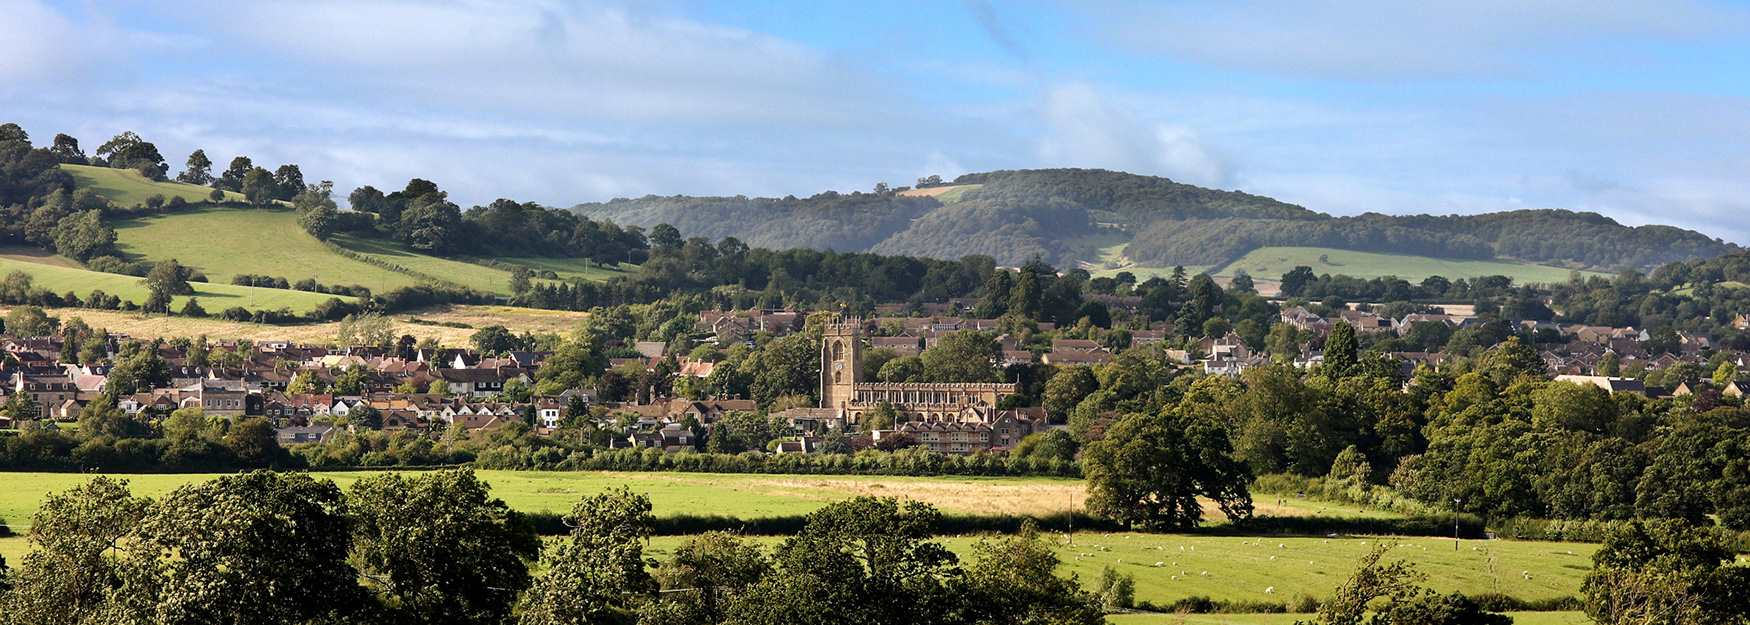 Winchcombe - 'Walking Capital of the Cotswolds'